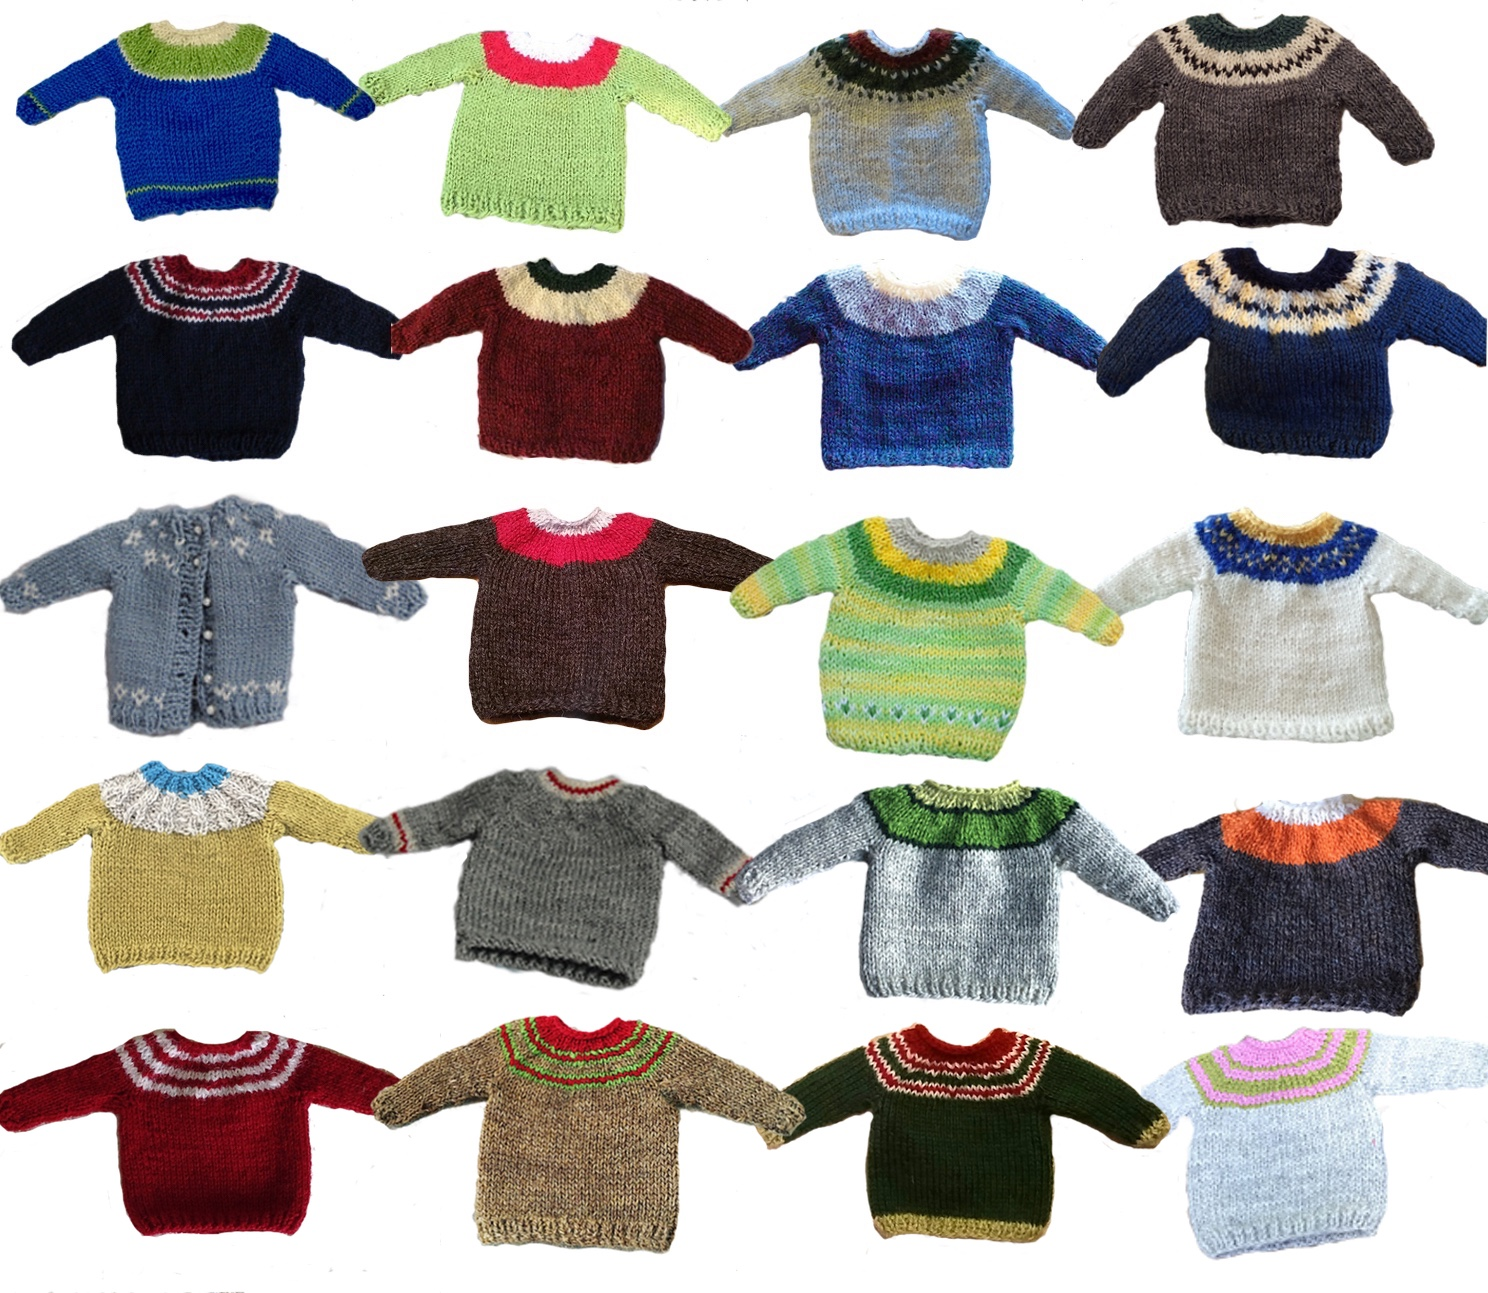 Just Crafty Enough – Cutest little wee sweaters